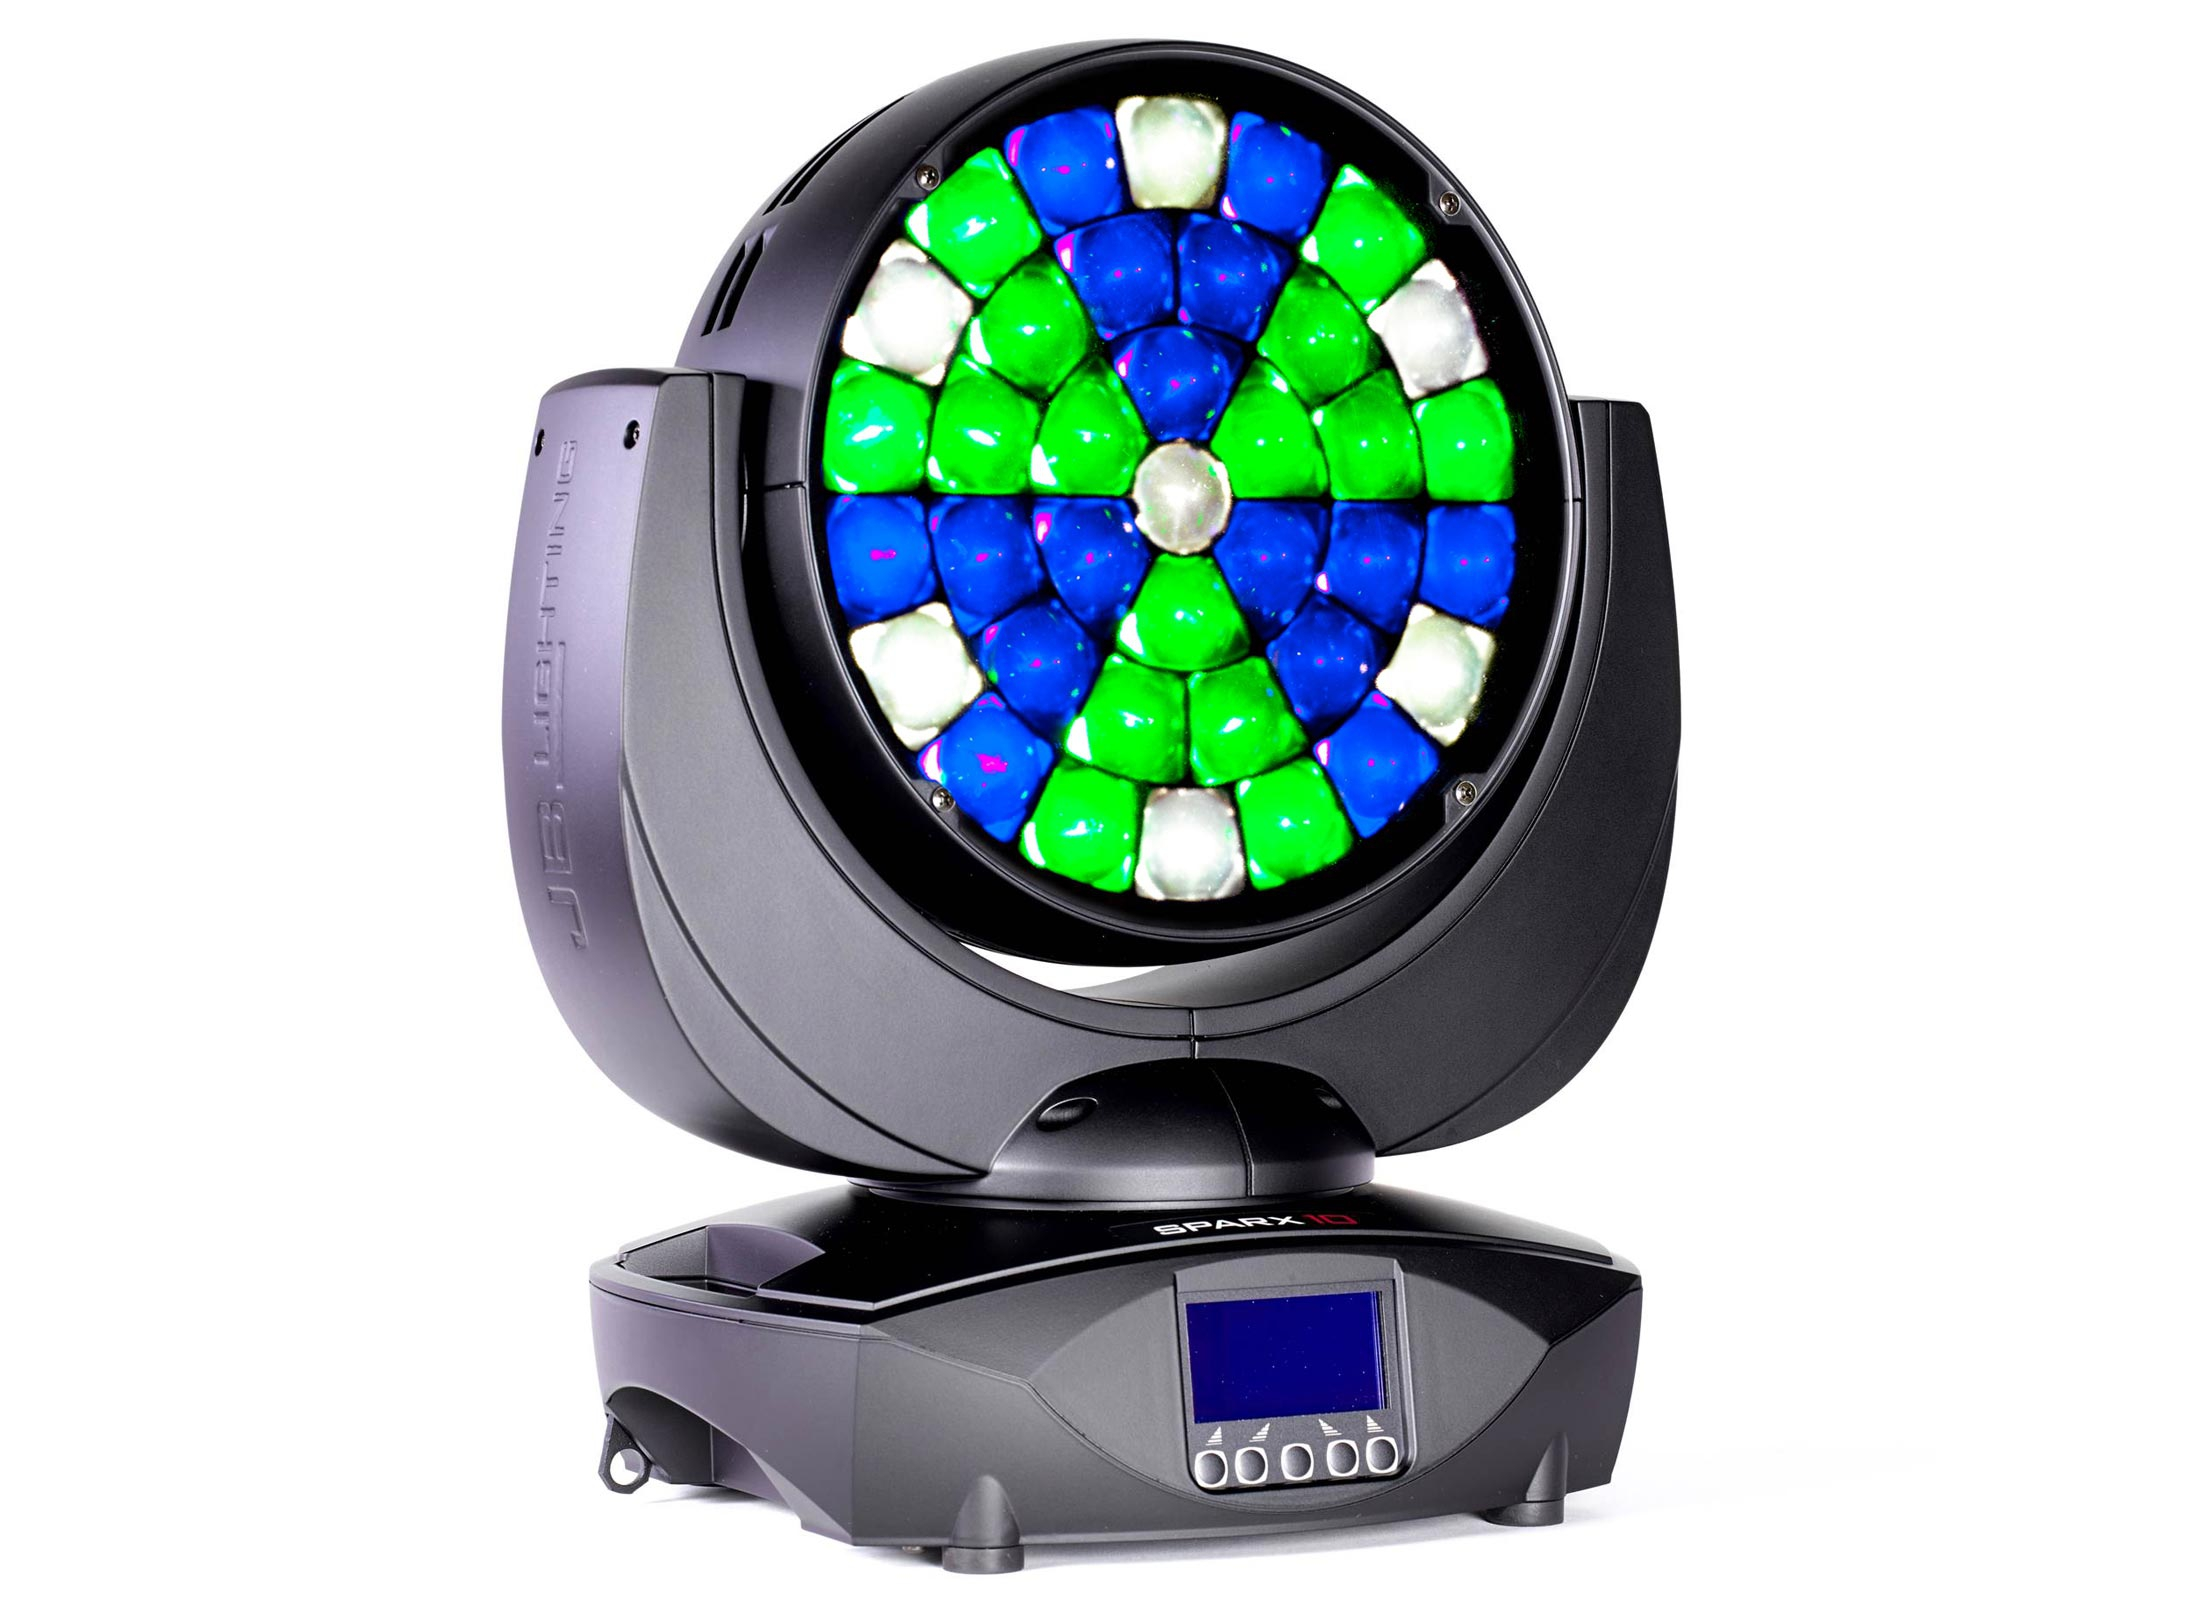 Jb Lighting Wireless Jb Lighting Sparx 10 Led Moving Head Wash Online At Low Prices At